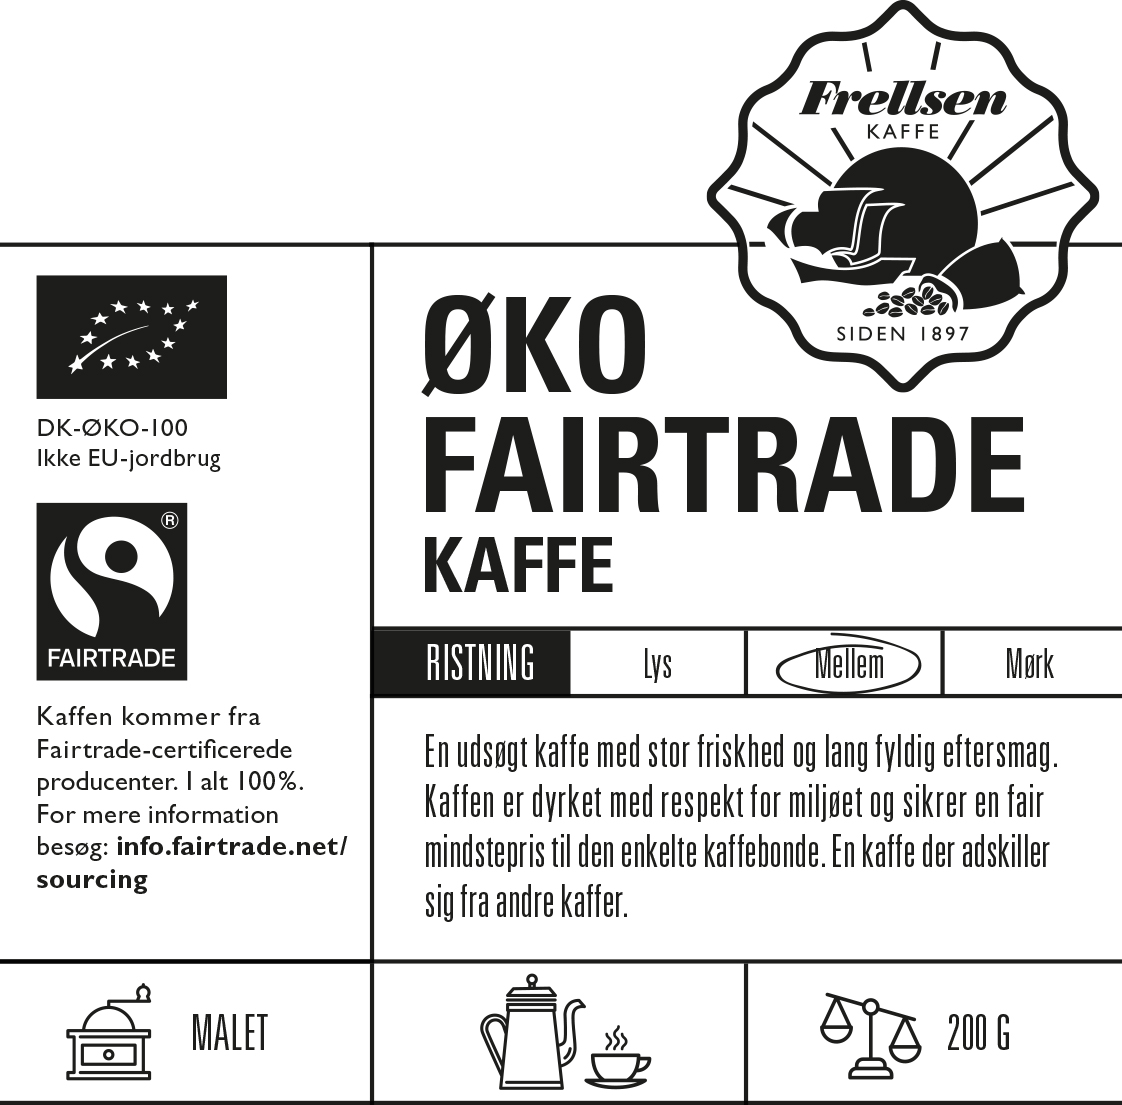 Øko Fairtrade Kaffe